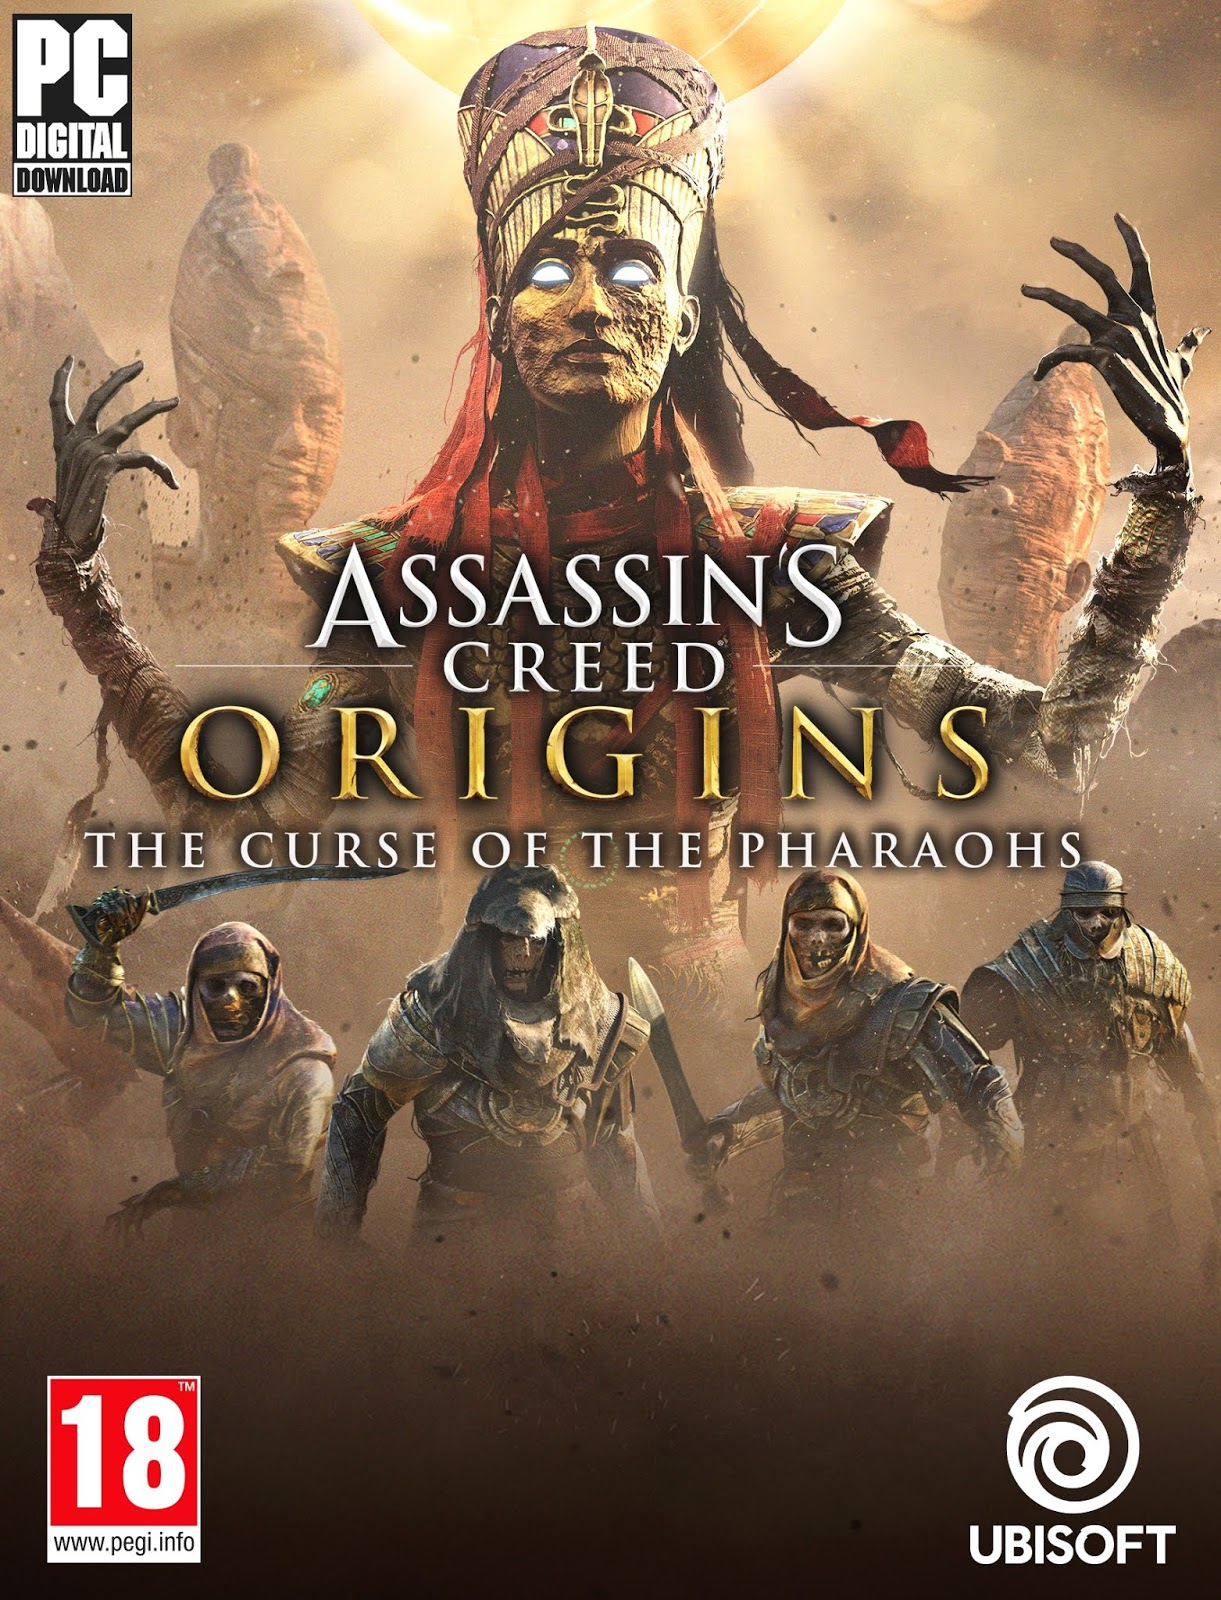 Descargar Assassins Creed Origins PC Cover Caratula